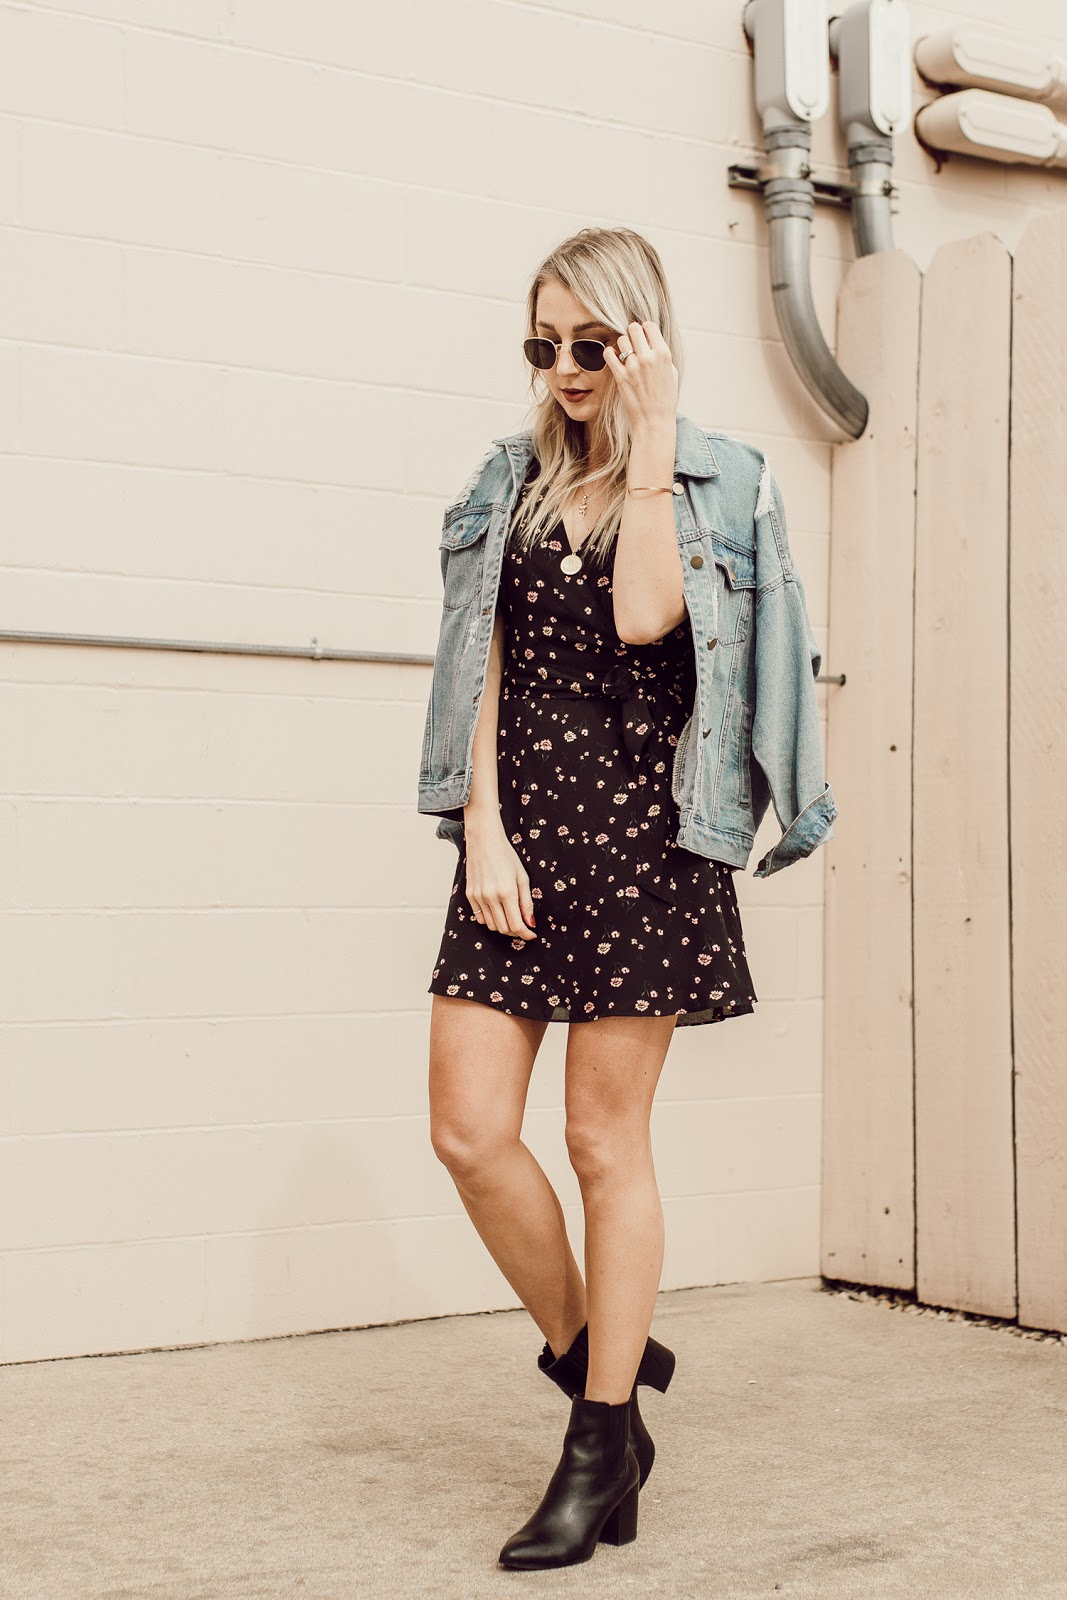 denim jacket over a floral wrap dress